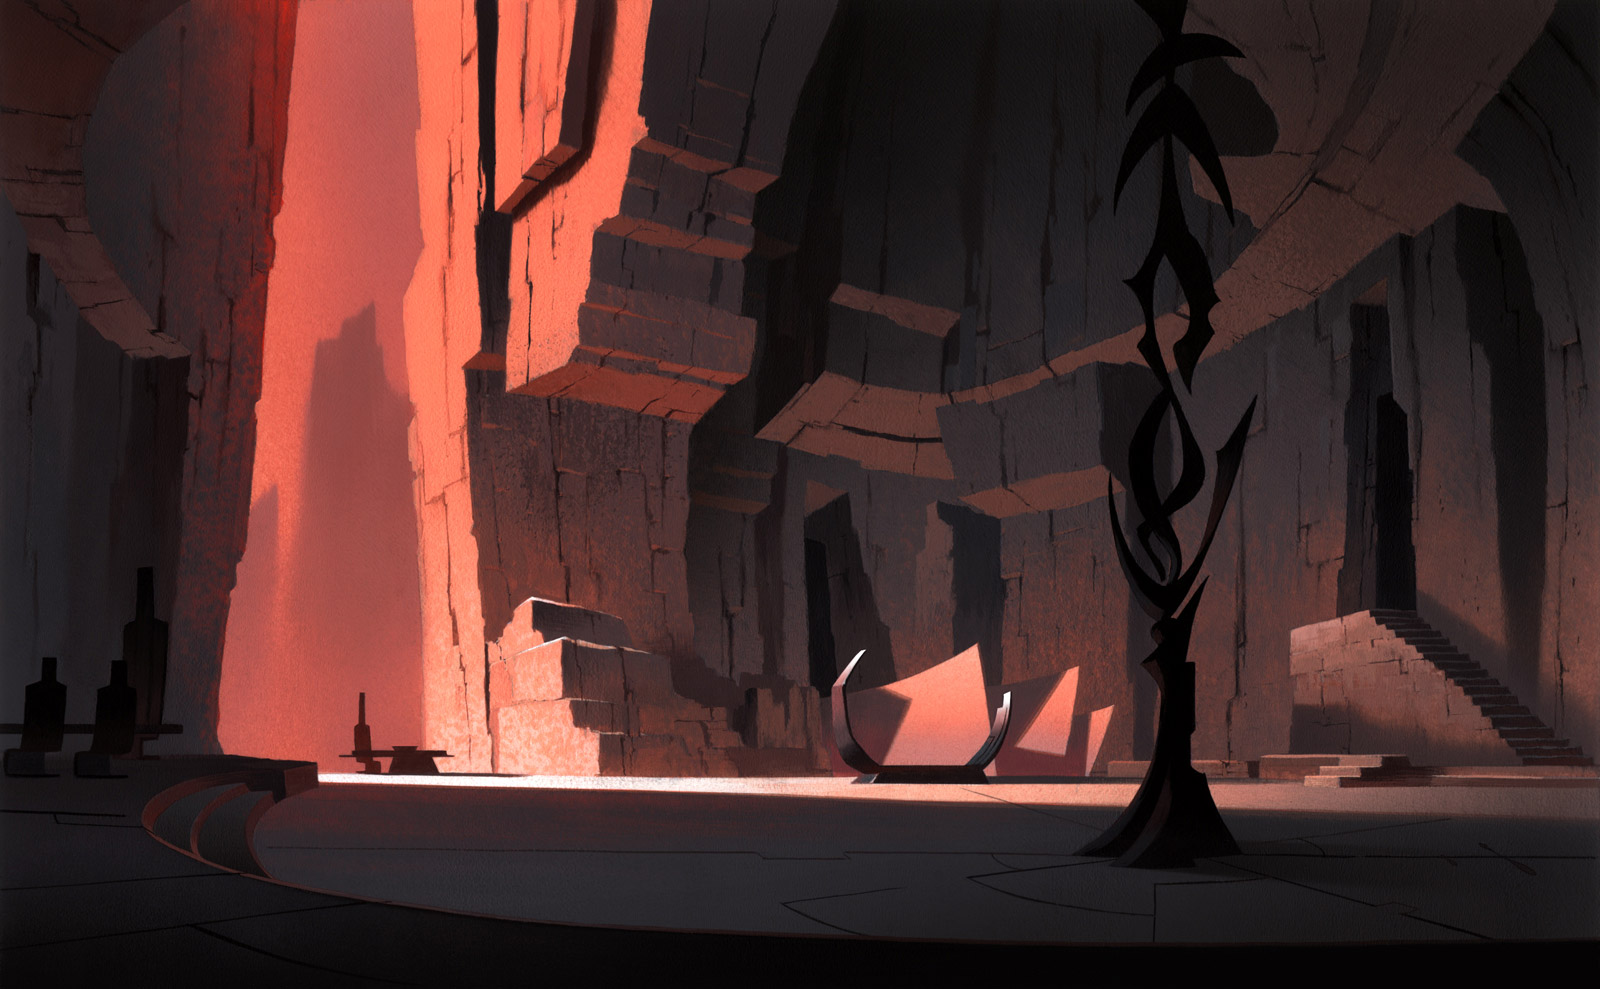 Background Painter: Scott Wills